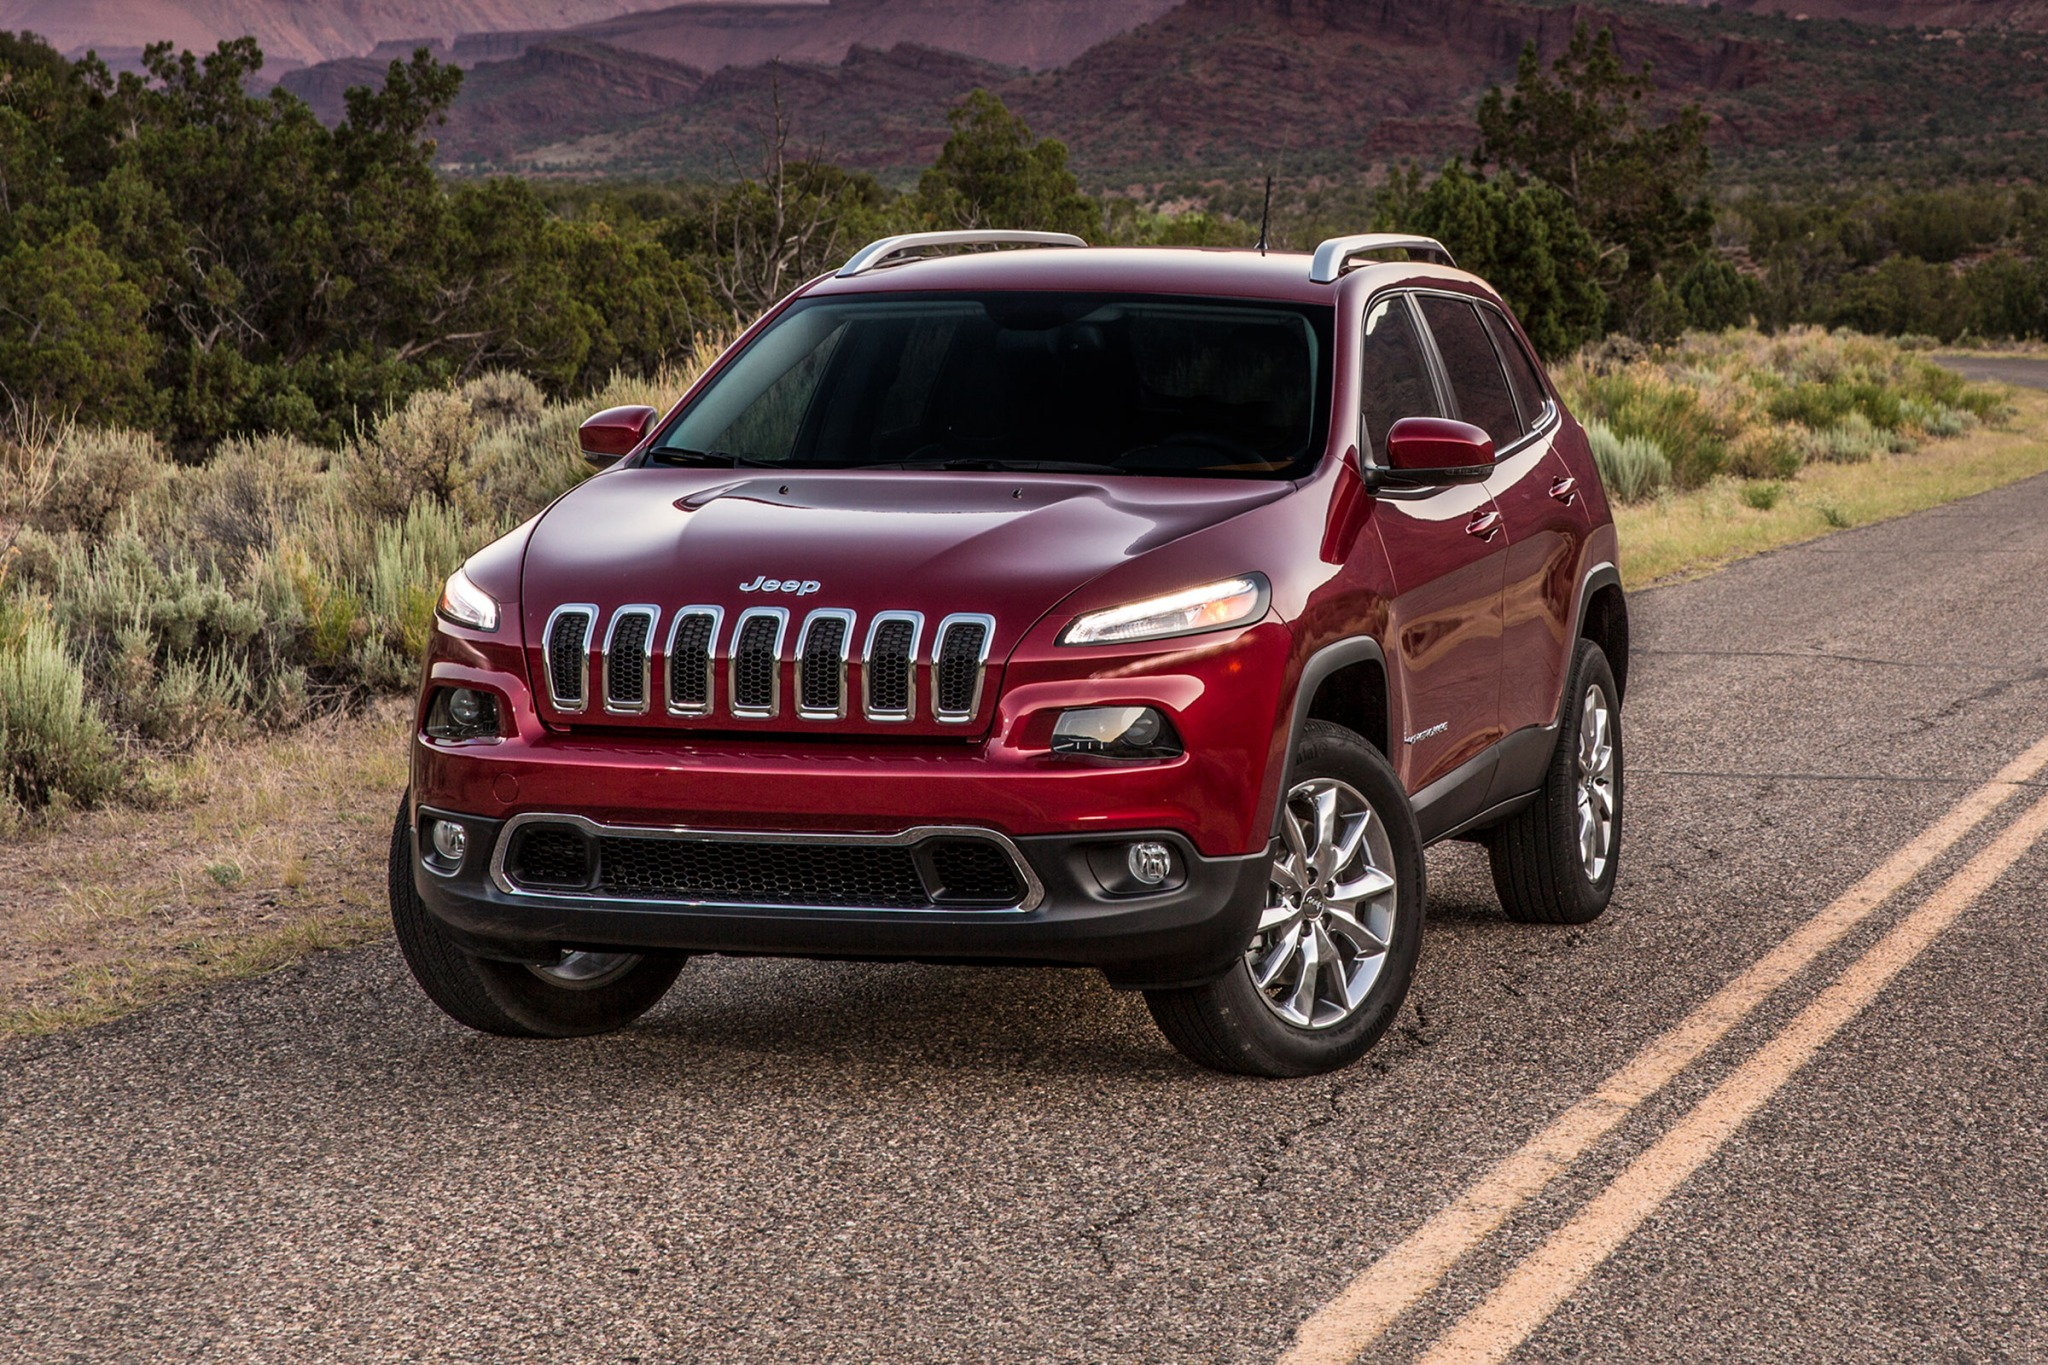 2018 jeep cherokee 4dr suv limited fq oem 1 2048